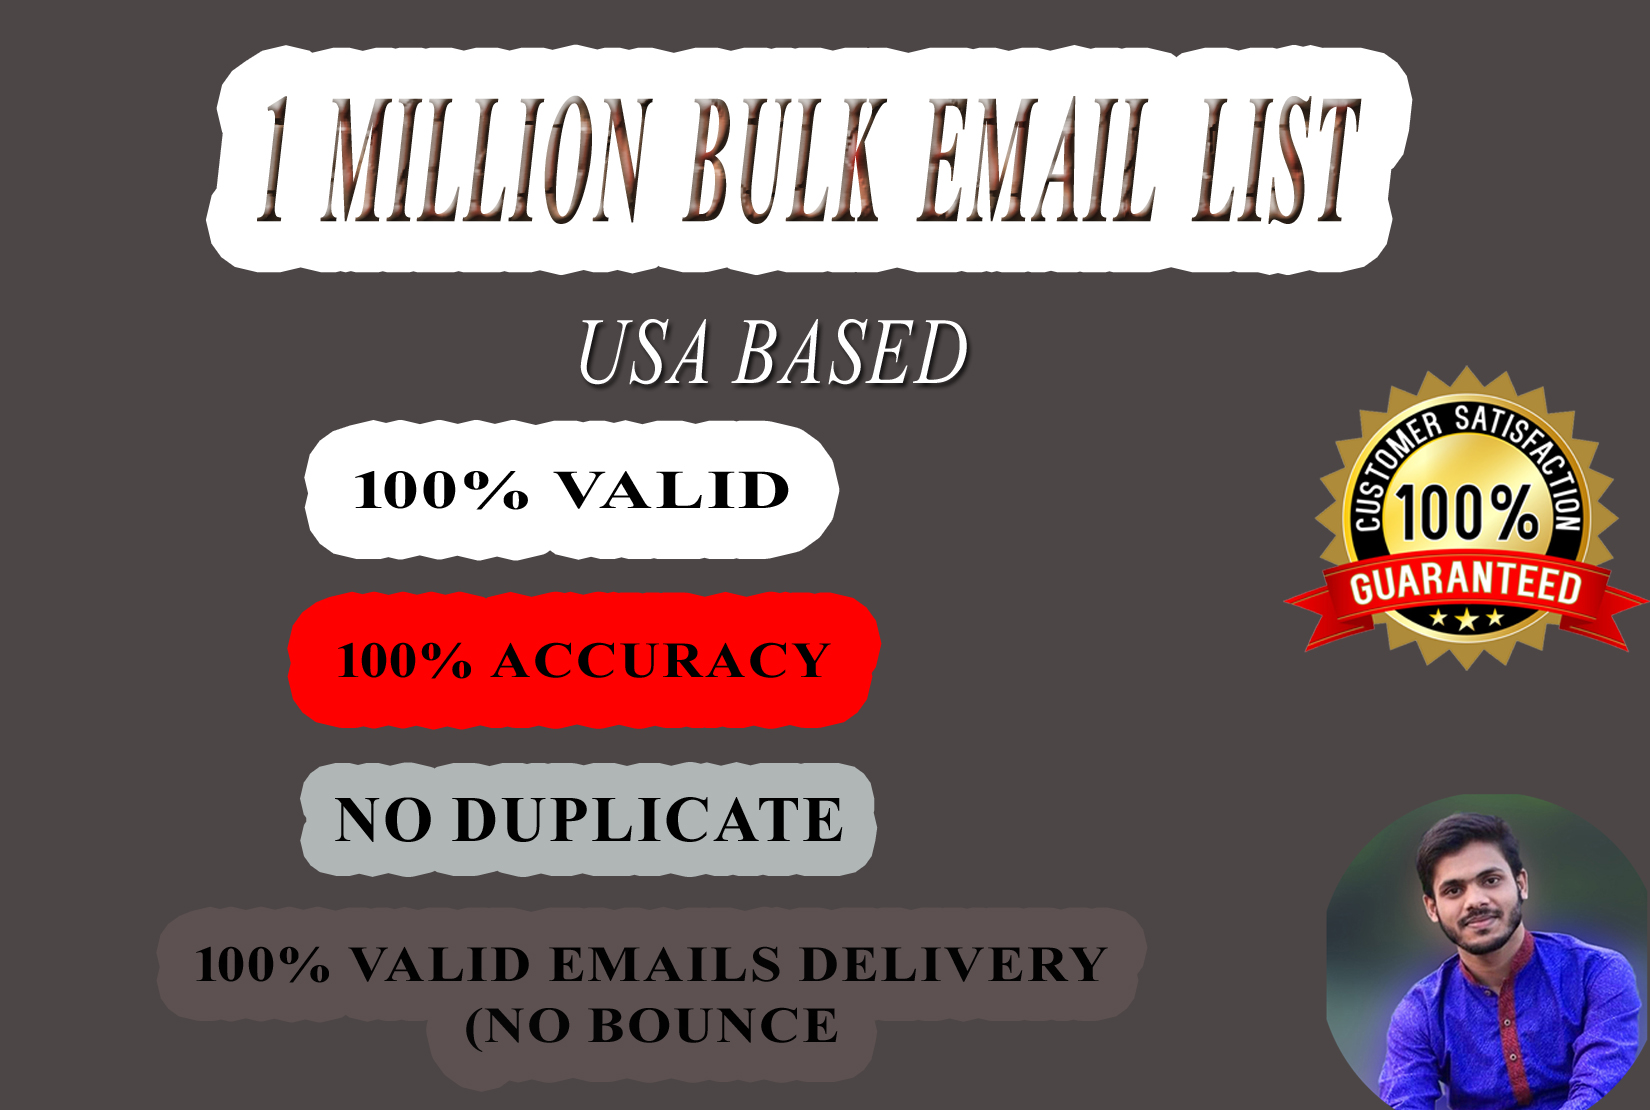 I will provide you 100k USA based Bulk Email list clean and verified